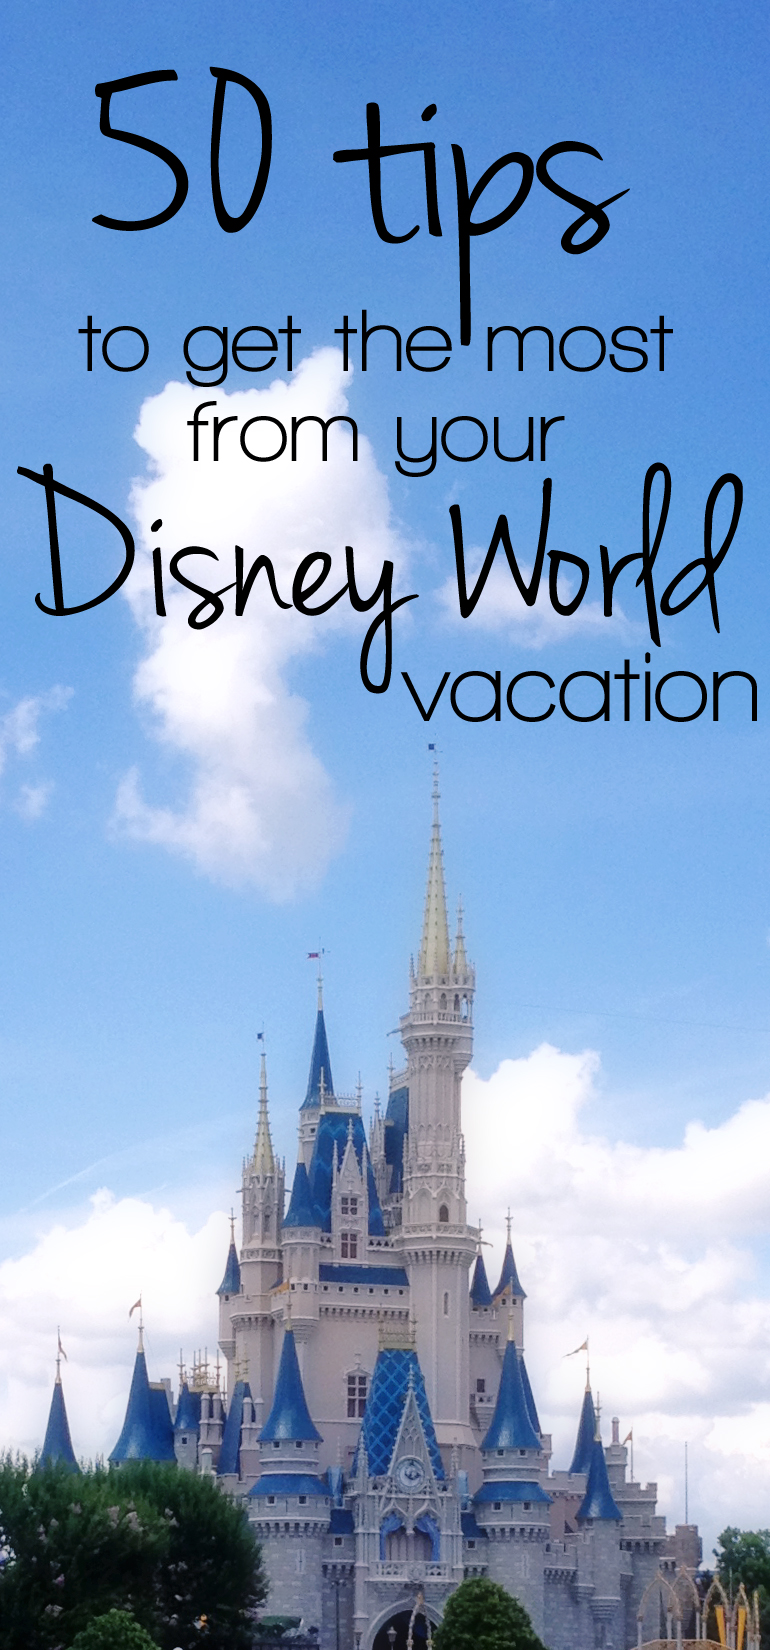 Disney World: 50 tips to get the most from your vacation